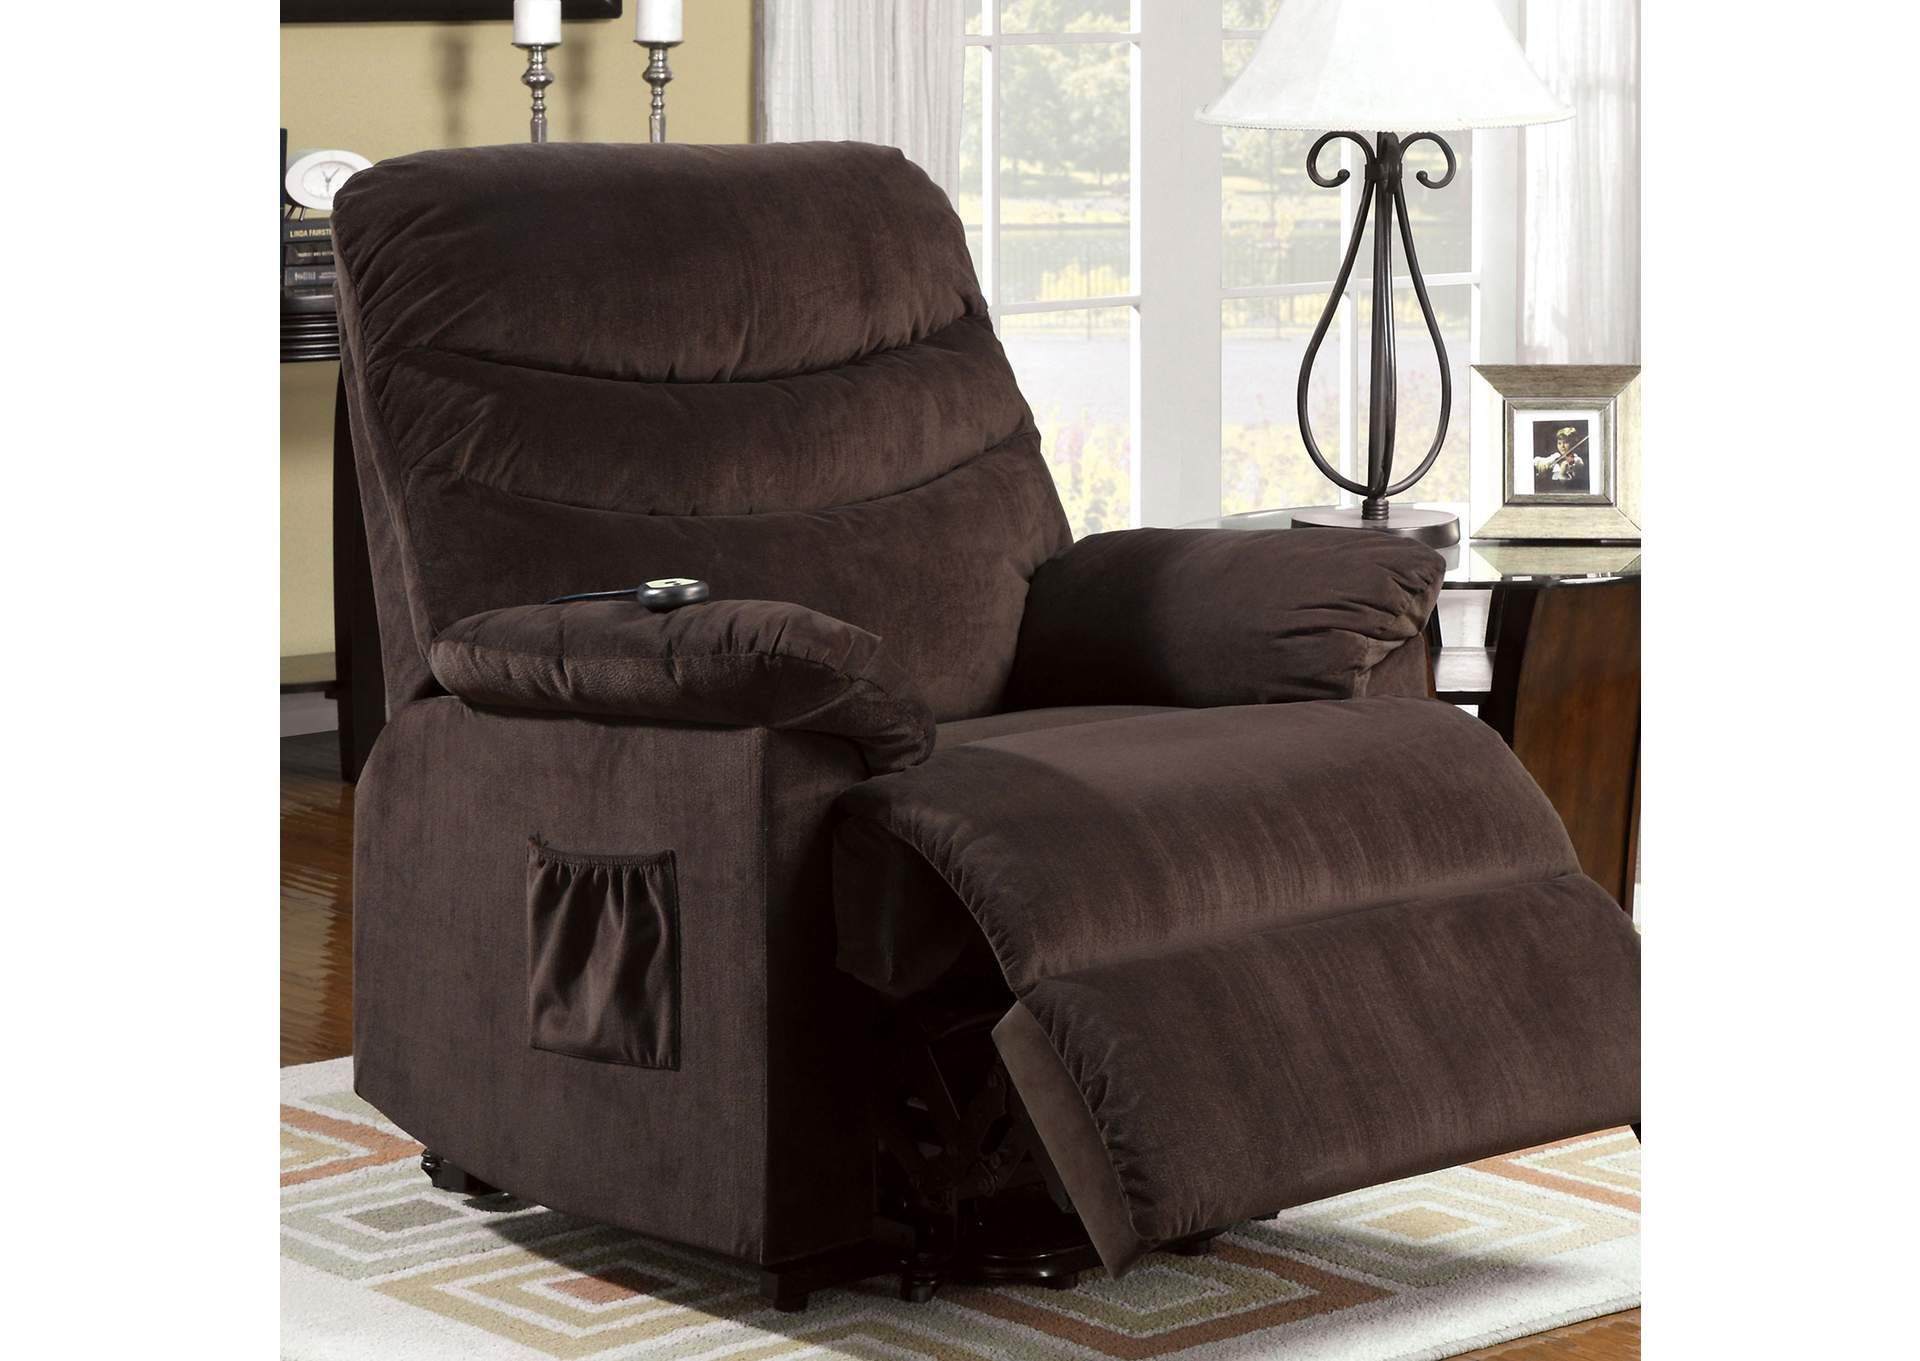 Perth Cocoa Brown Bella Fabric Power Lift Recliner,Furniture of America